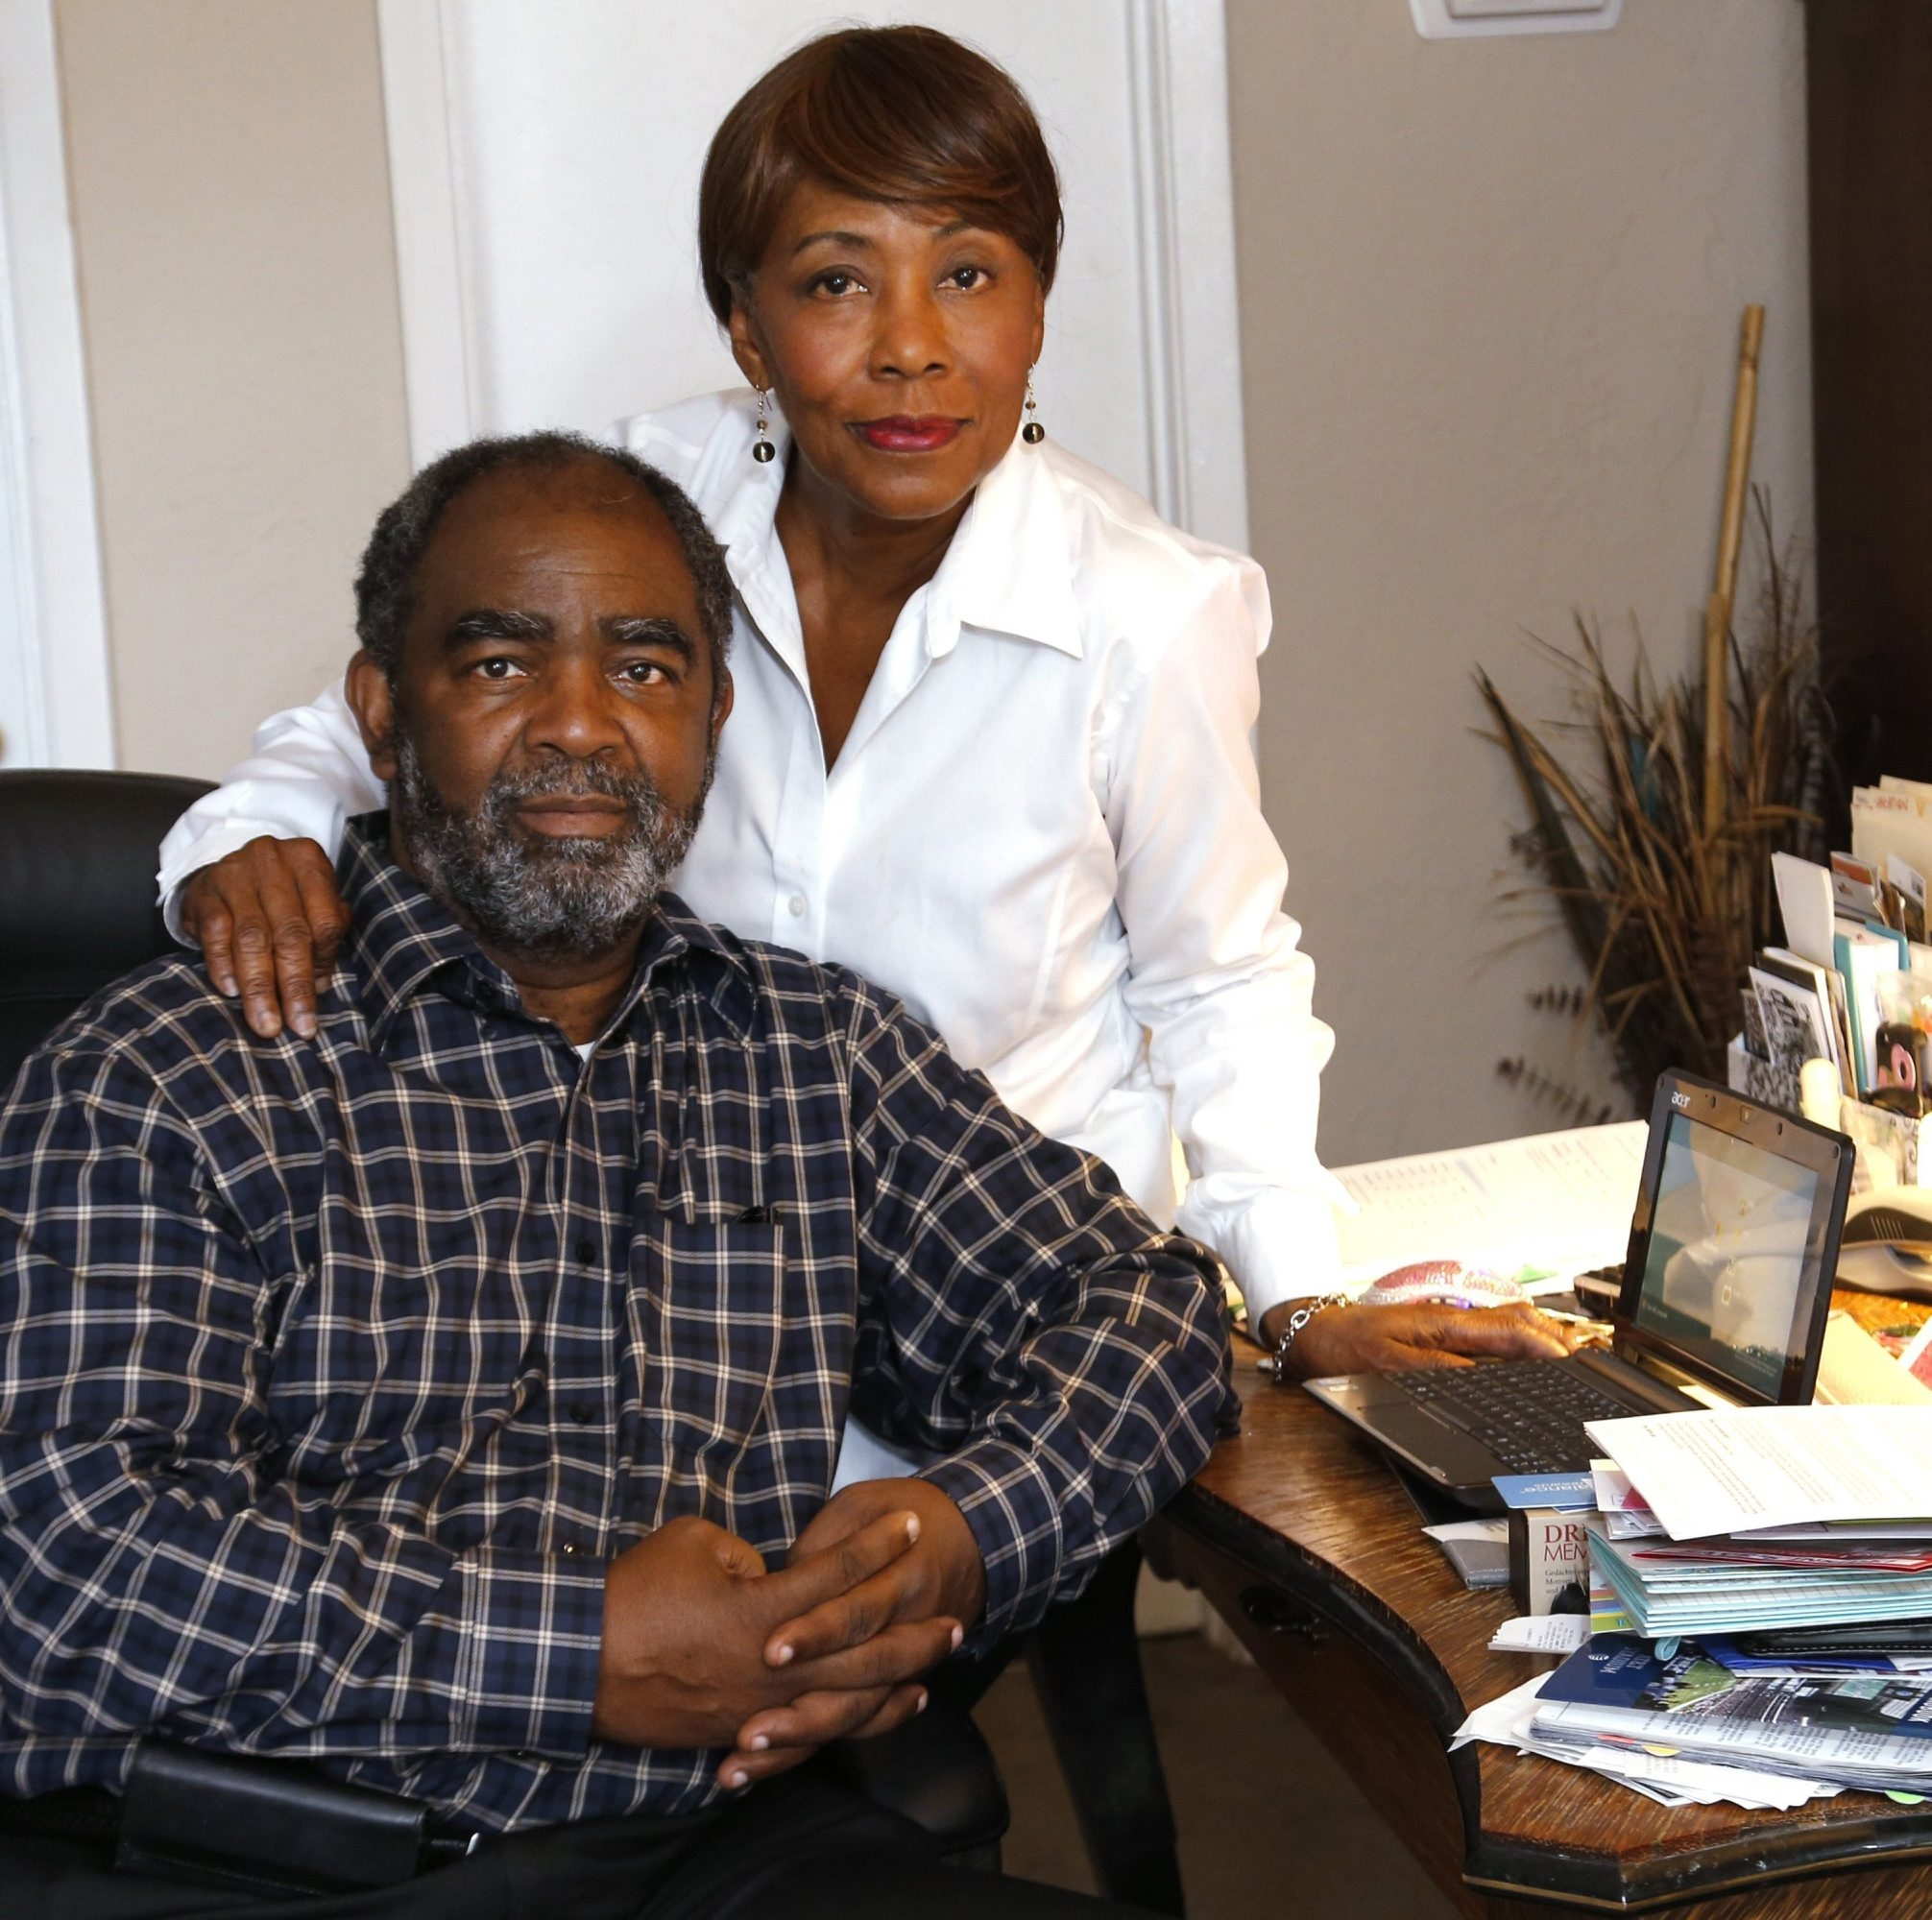 Richard and Sonya Brown of Arlington, Texas, have decided to take an annuity over a lump sum. Richard, who is considering retiring in January, said he doesn't want the worries that come with investing a lump sum himself.